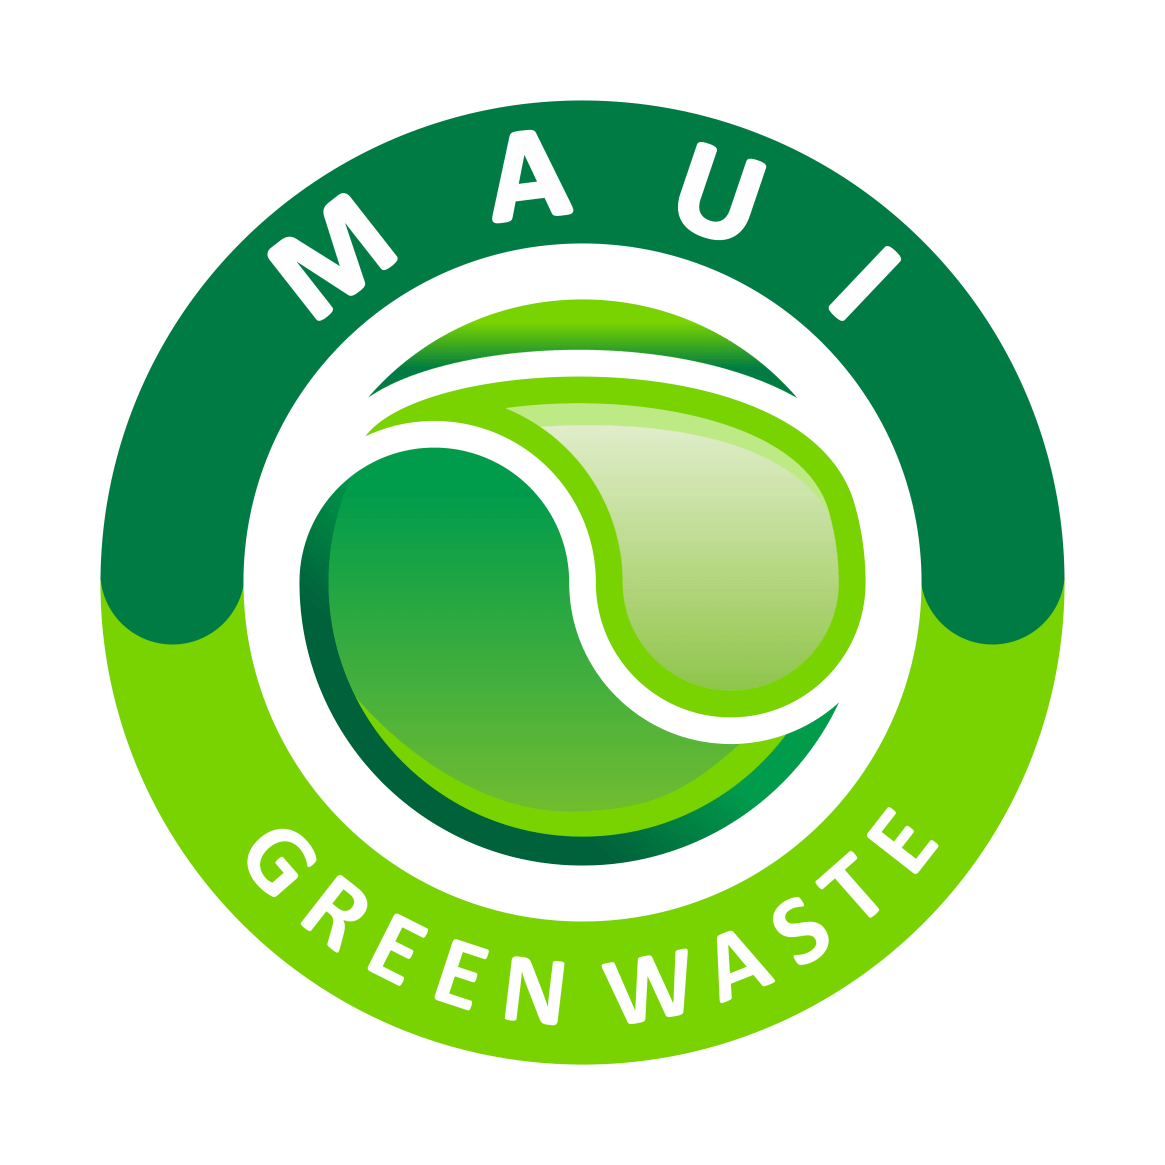 maui green waste removal